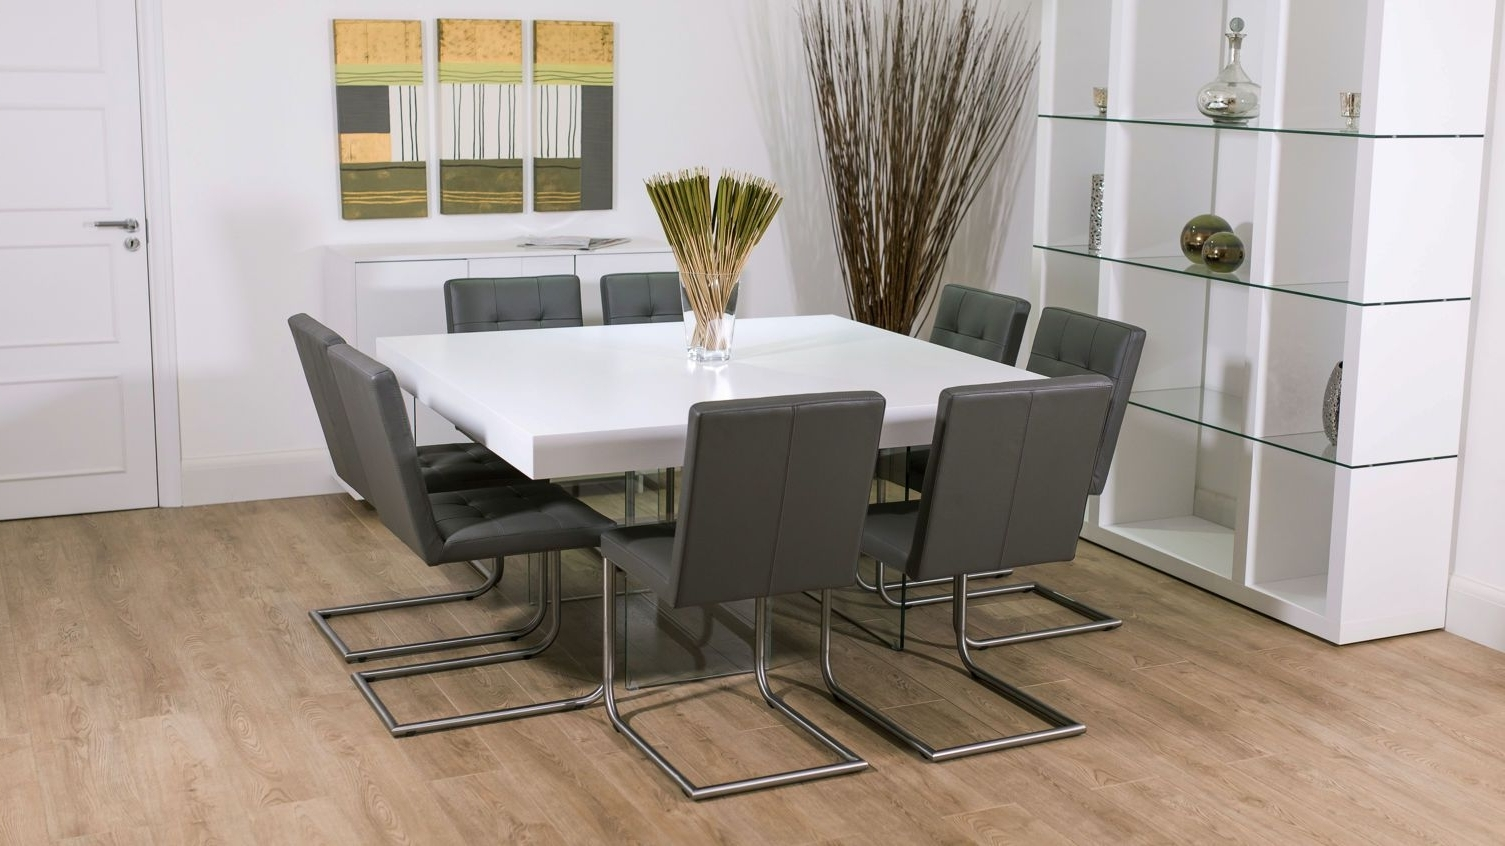 2018 Dining Tables With 8 Seater Within 8 Seater Square Glass Dining Table (Gallery 19 of 25)